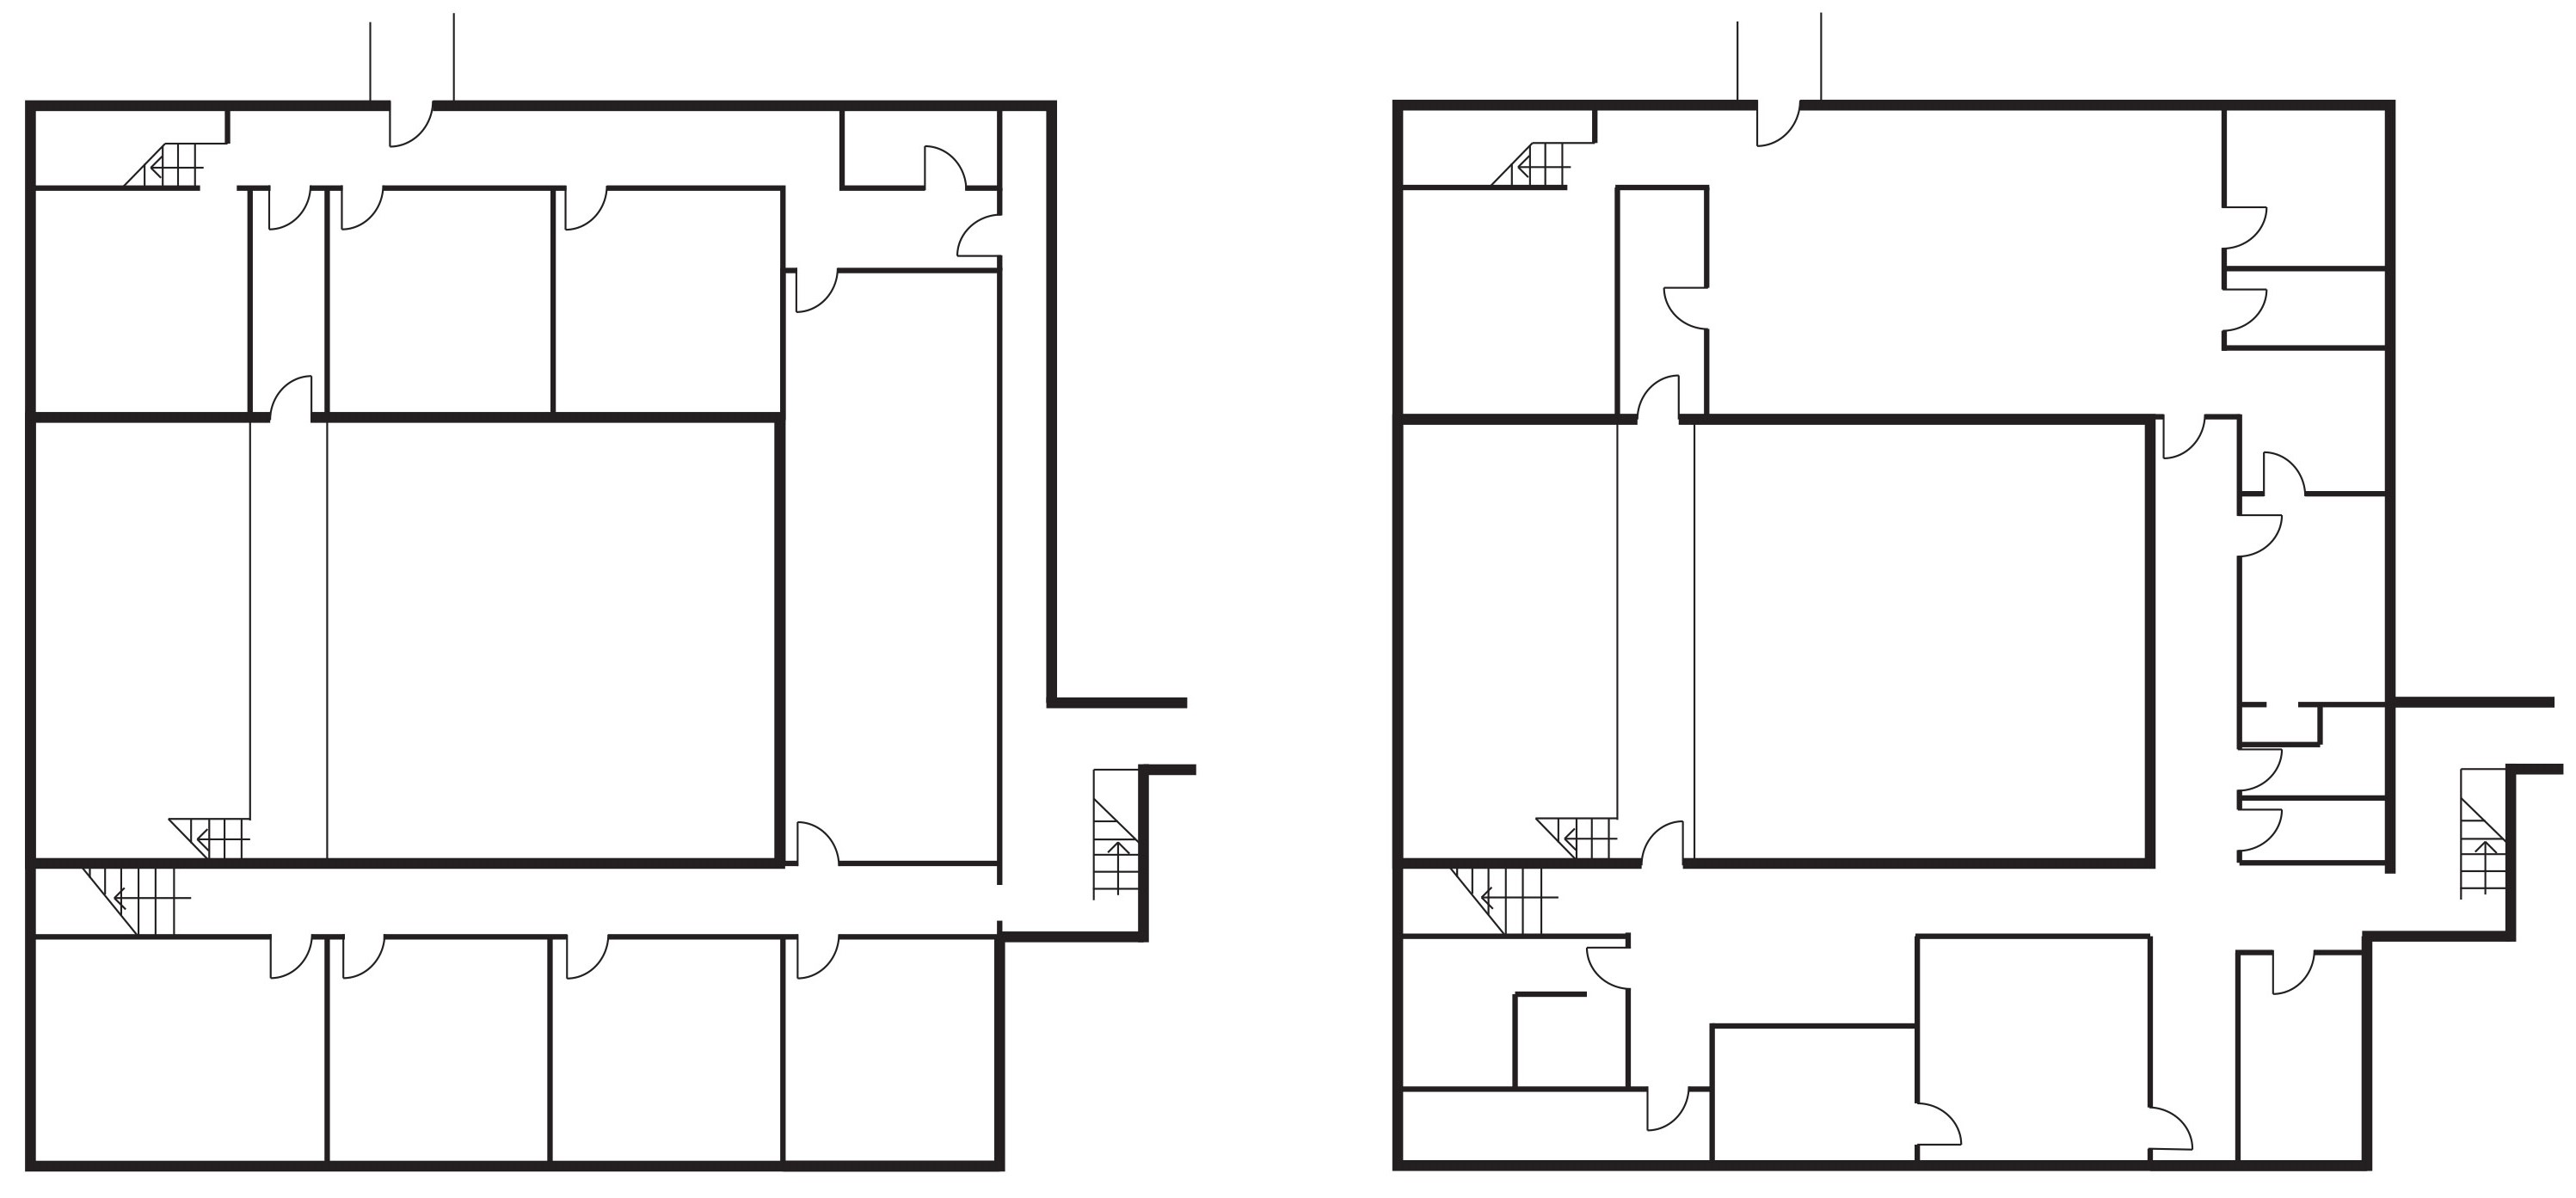 File floor plans of sacred heart wikimedia for Floor description